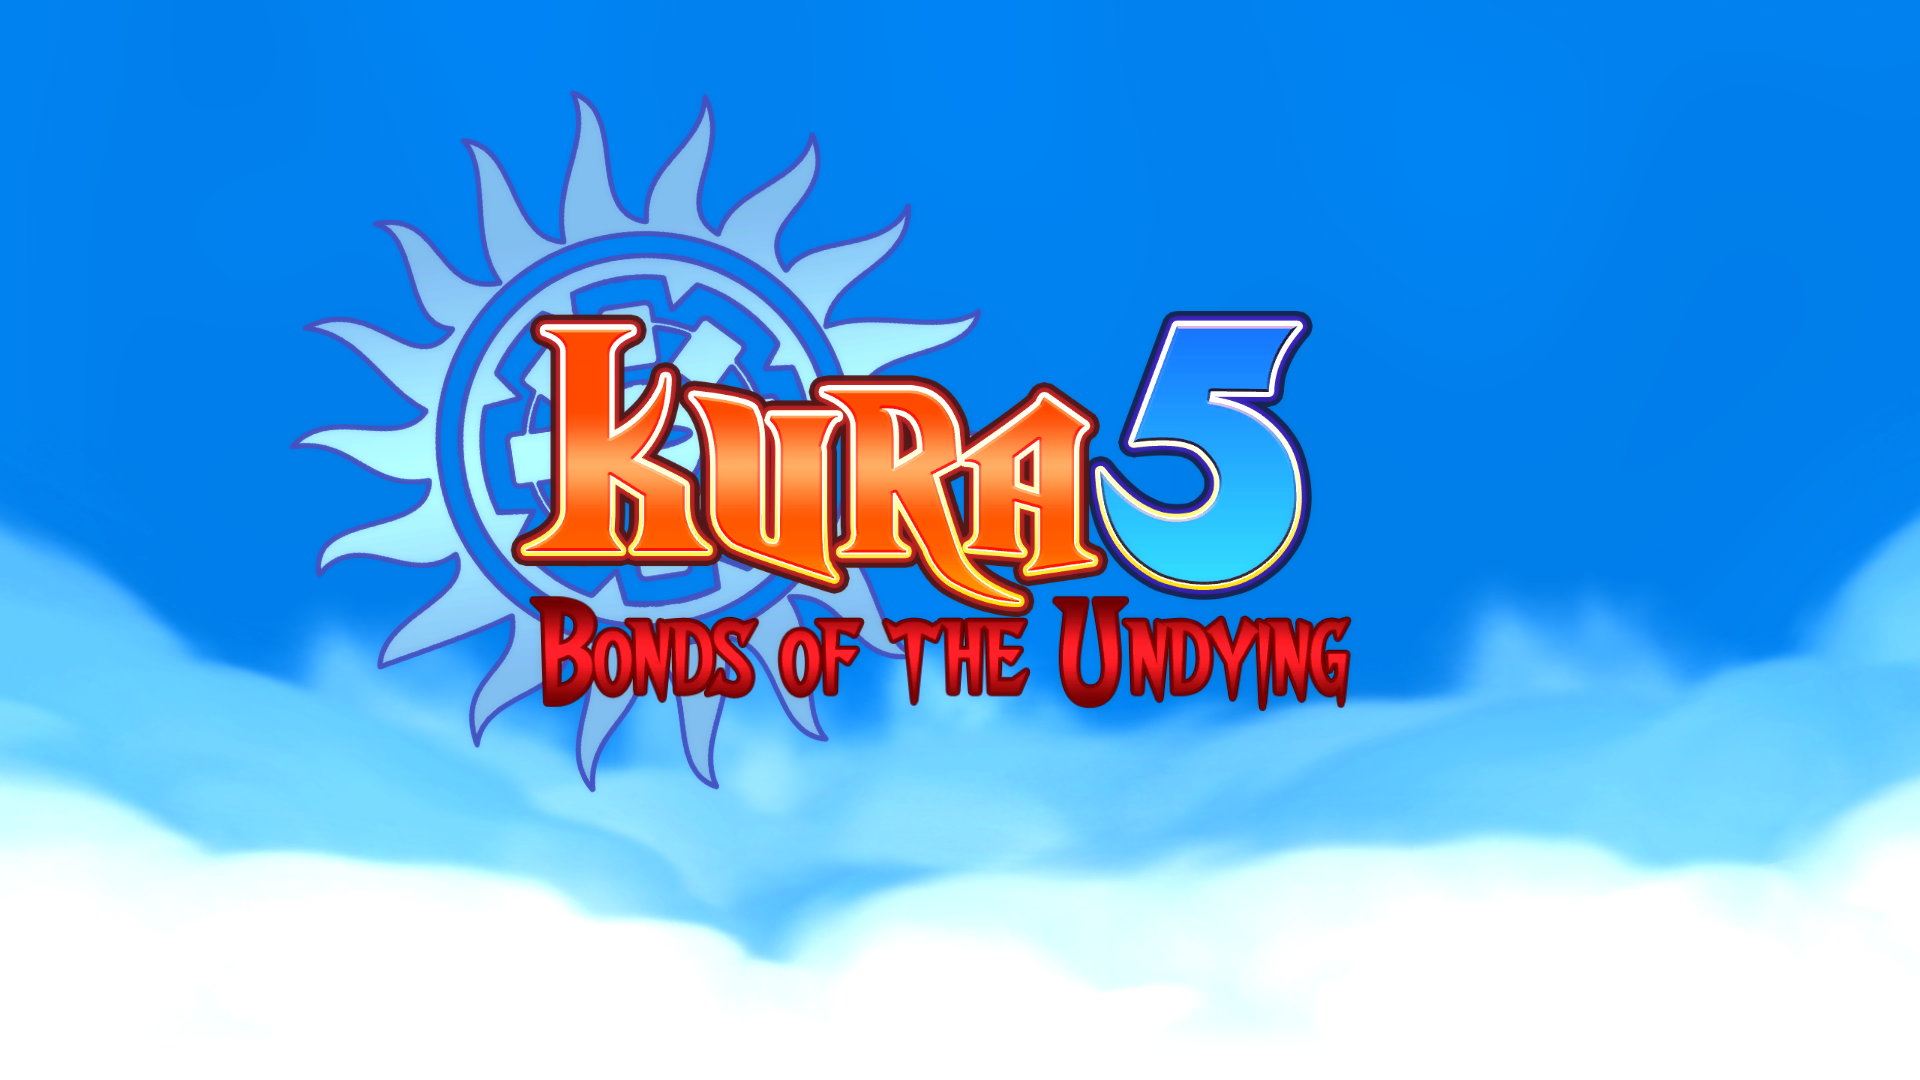 Kura5: Bonds of the Undying Chapters 1-2